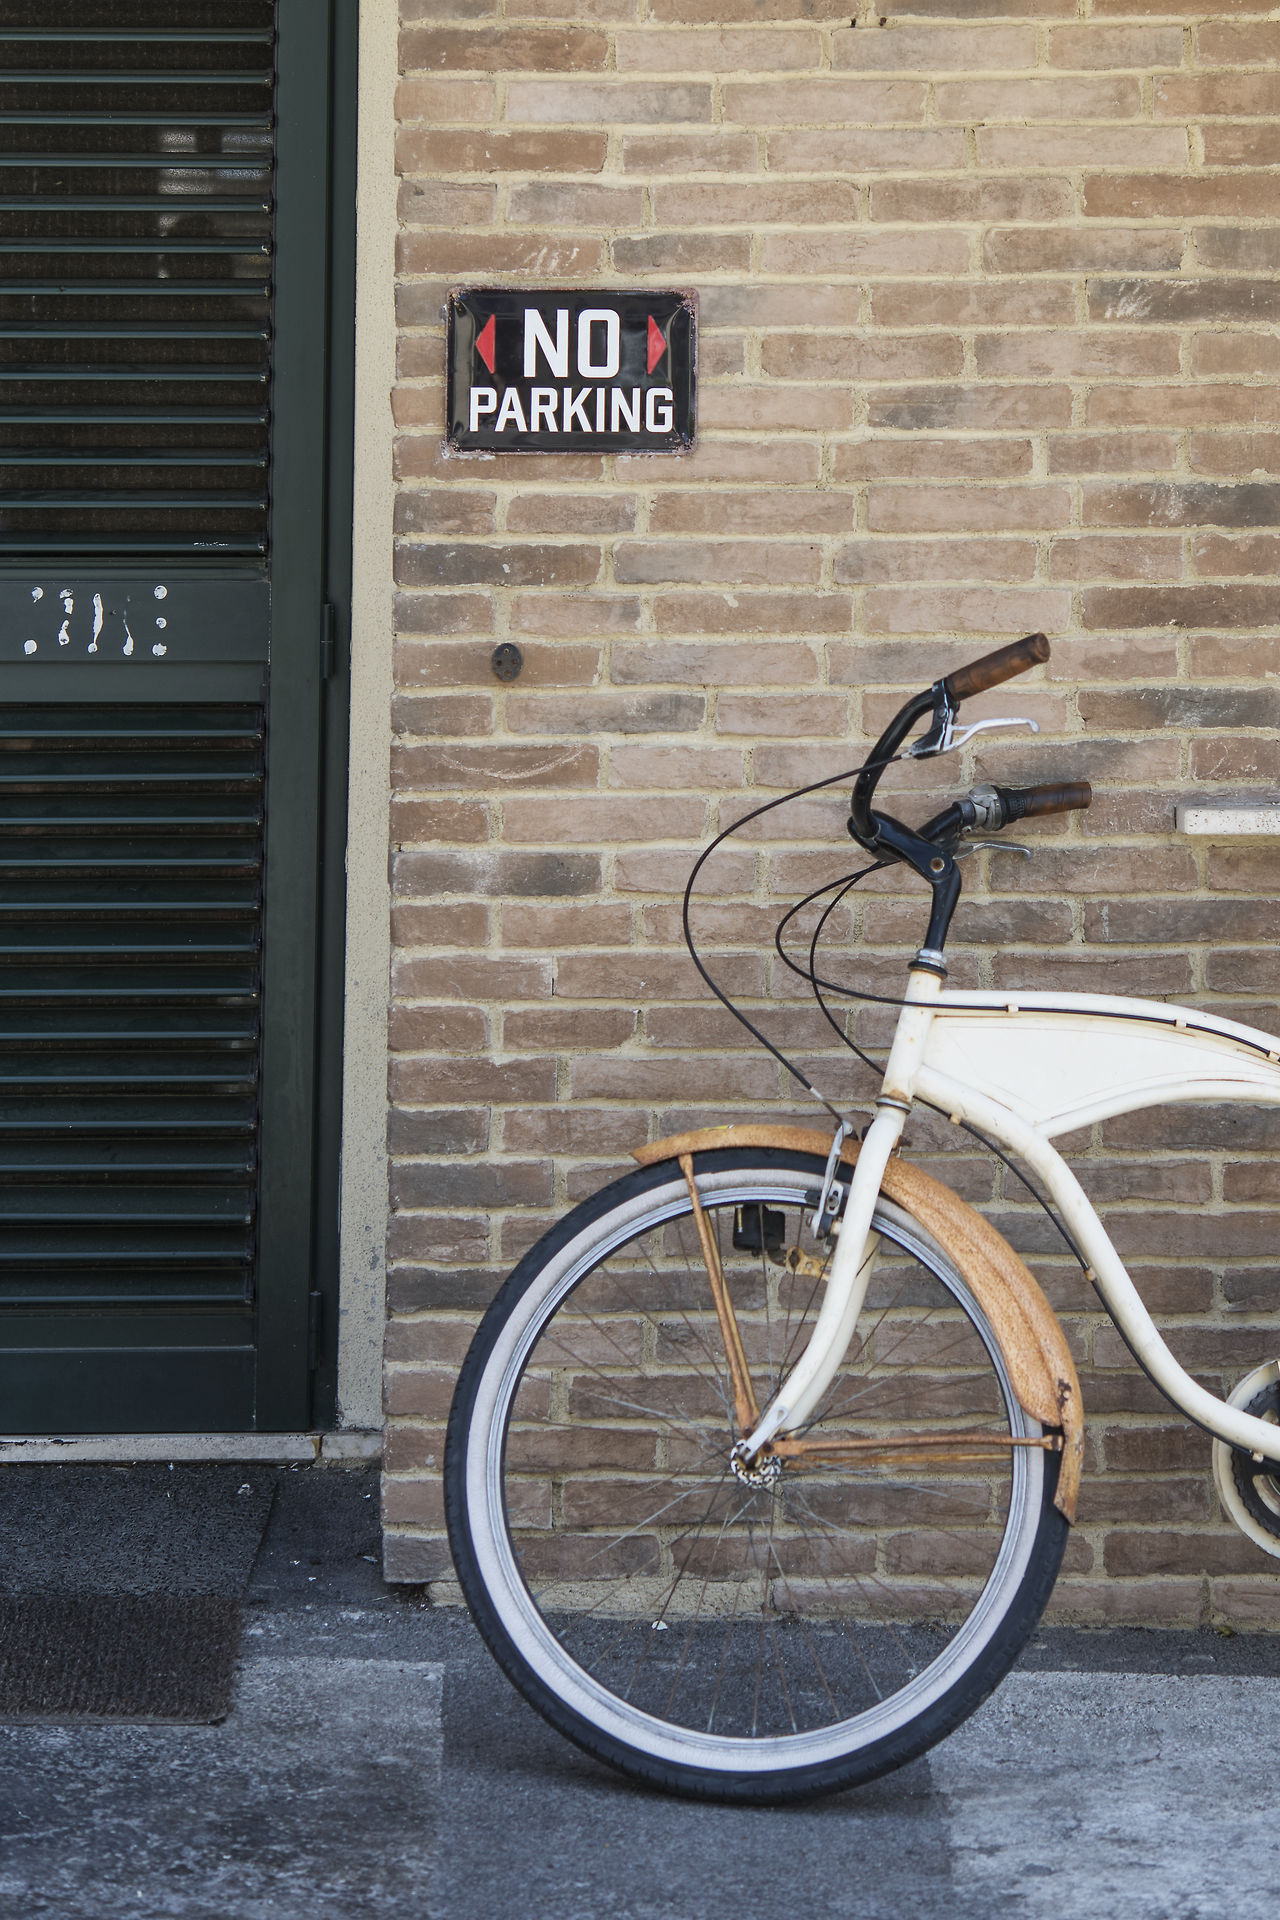 Architecture Bicycle Bike Parking Brick Wall Building Exterior City Day Mode Of Transport No Parking Sign No People Old Fashioned Outdoors Transportation